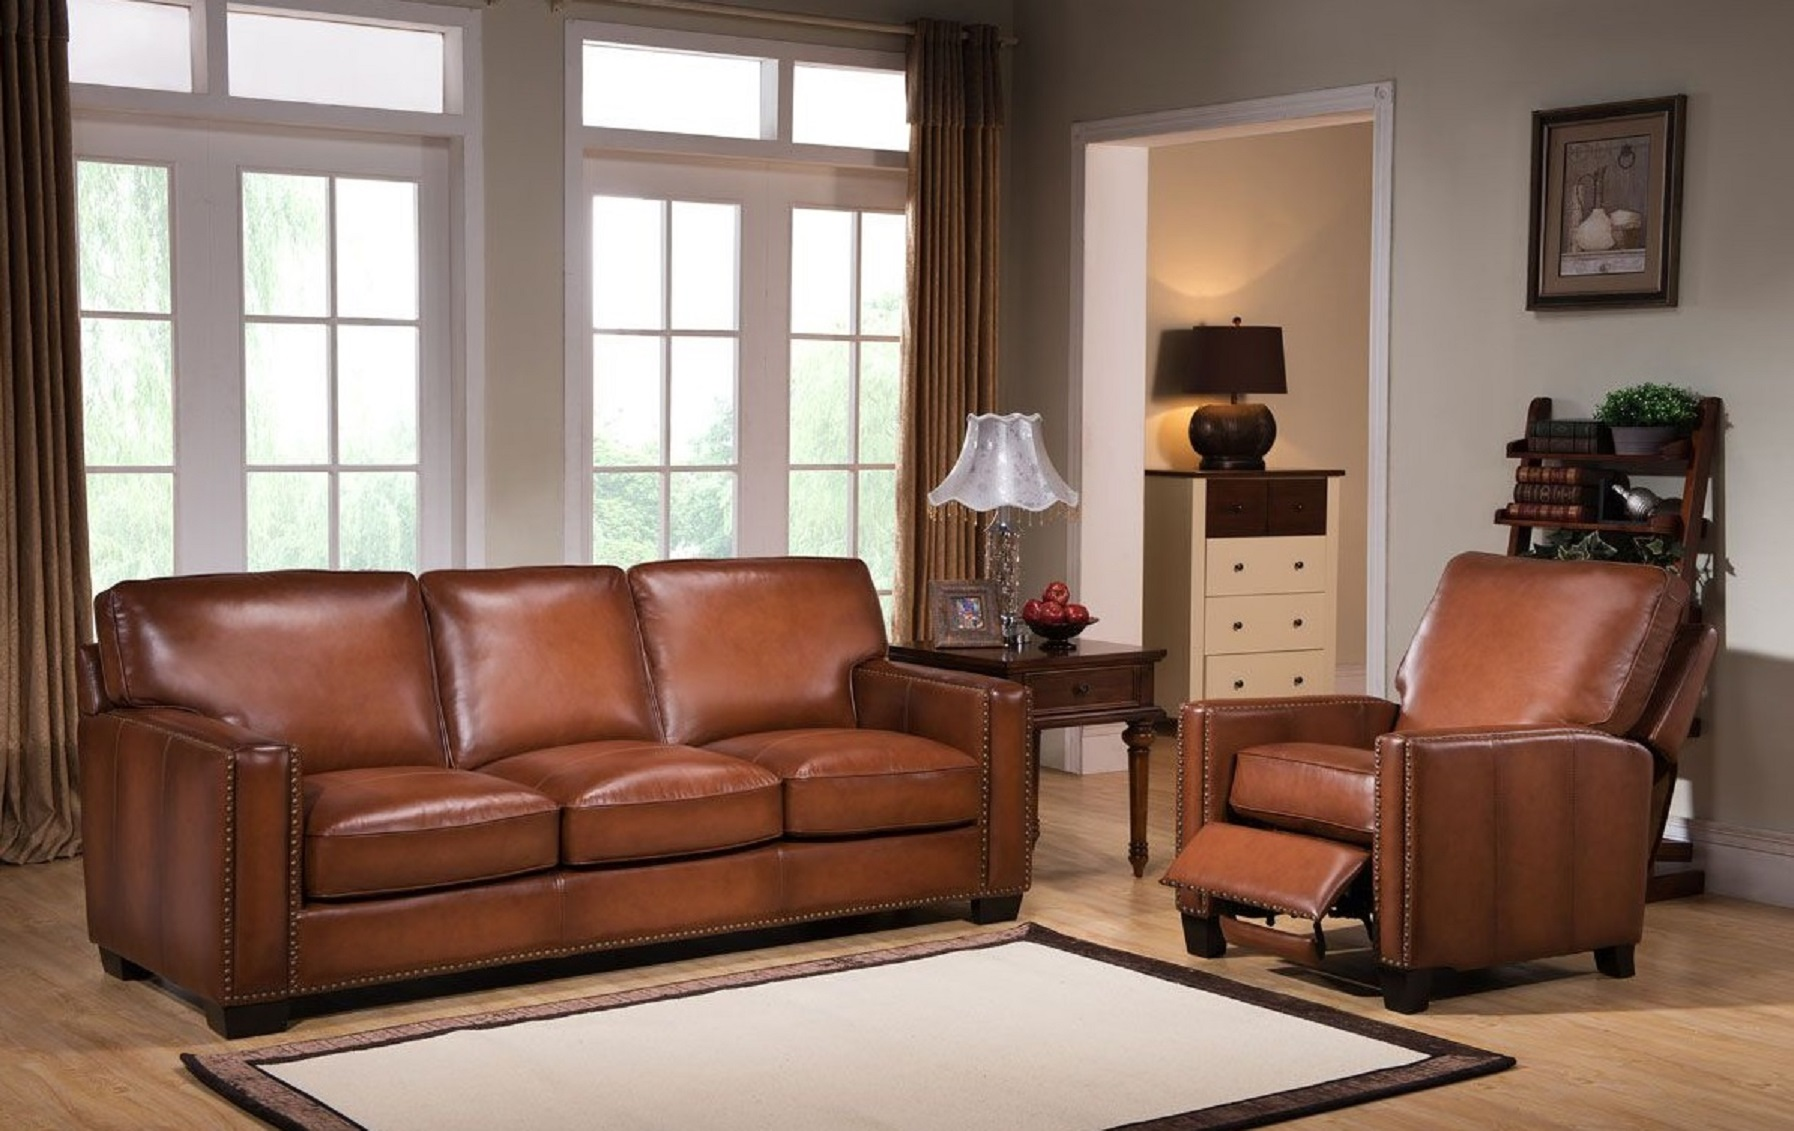 Sofa Set Online Harley 100 Full Leather Brown Sofa Set Usa Furniture Online